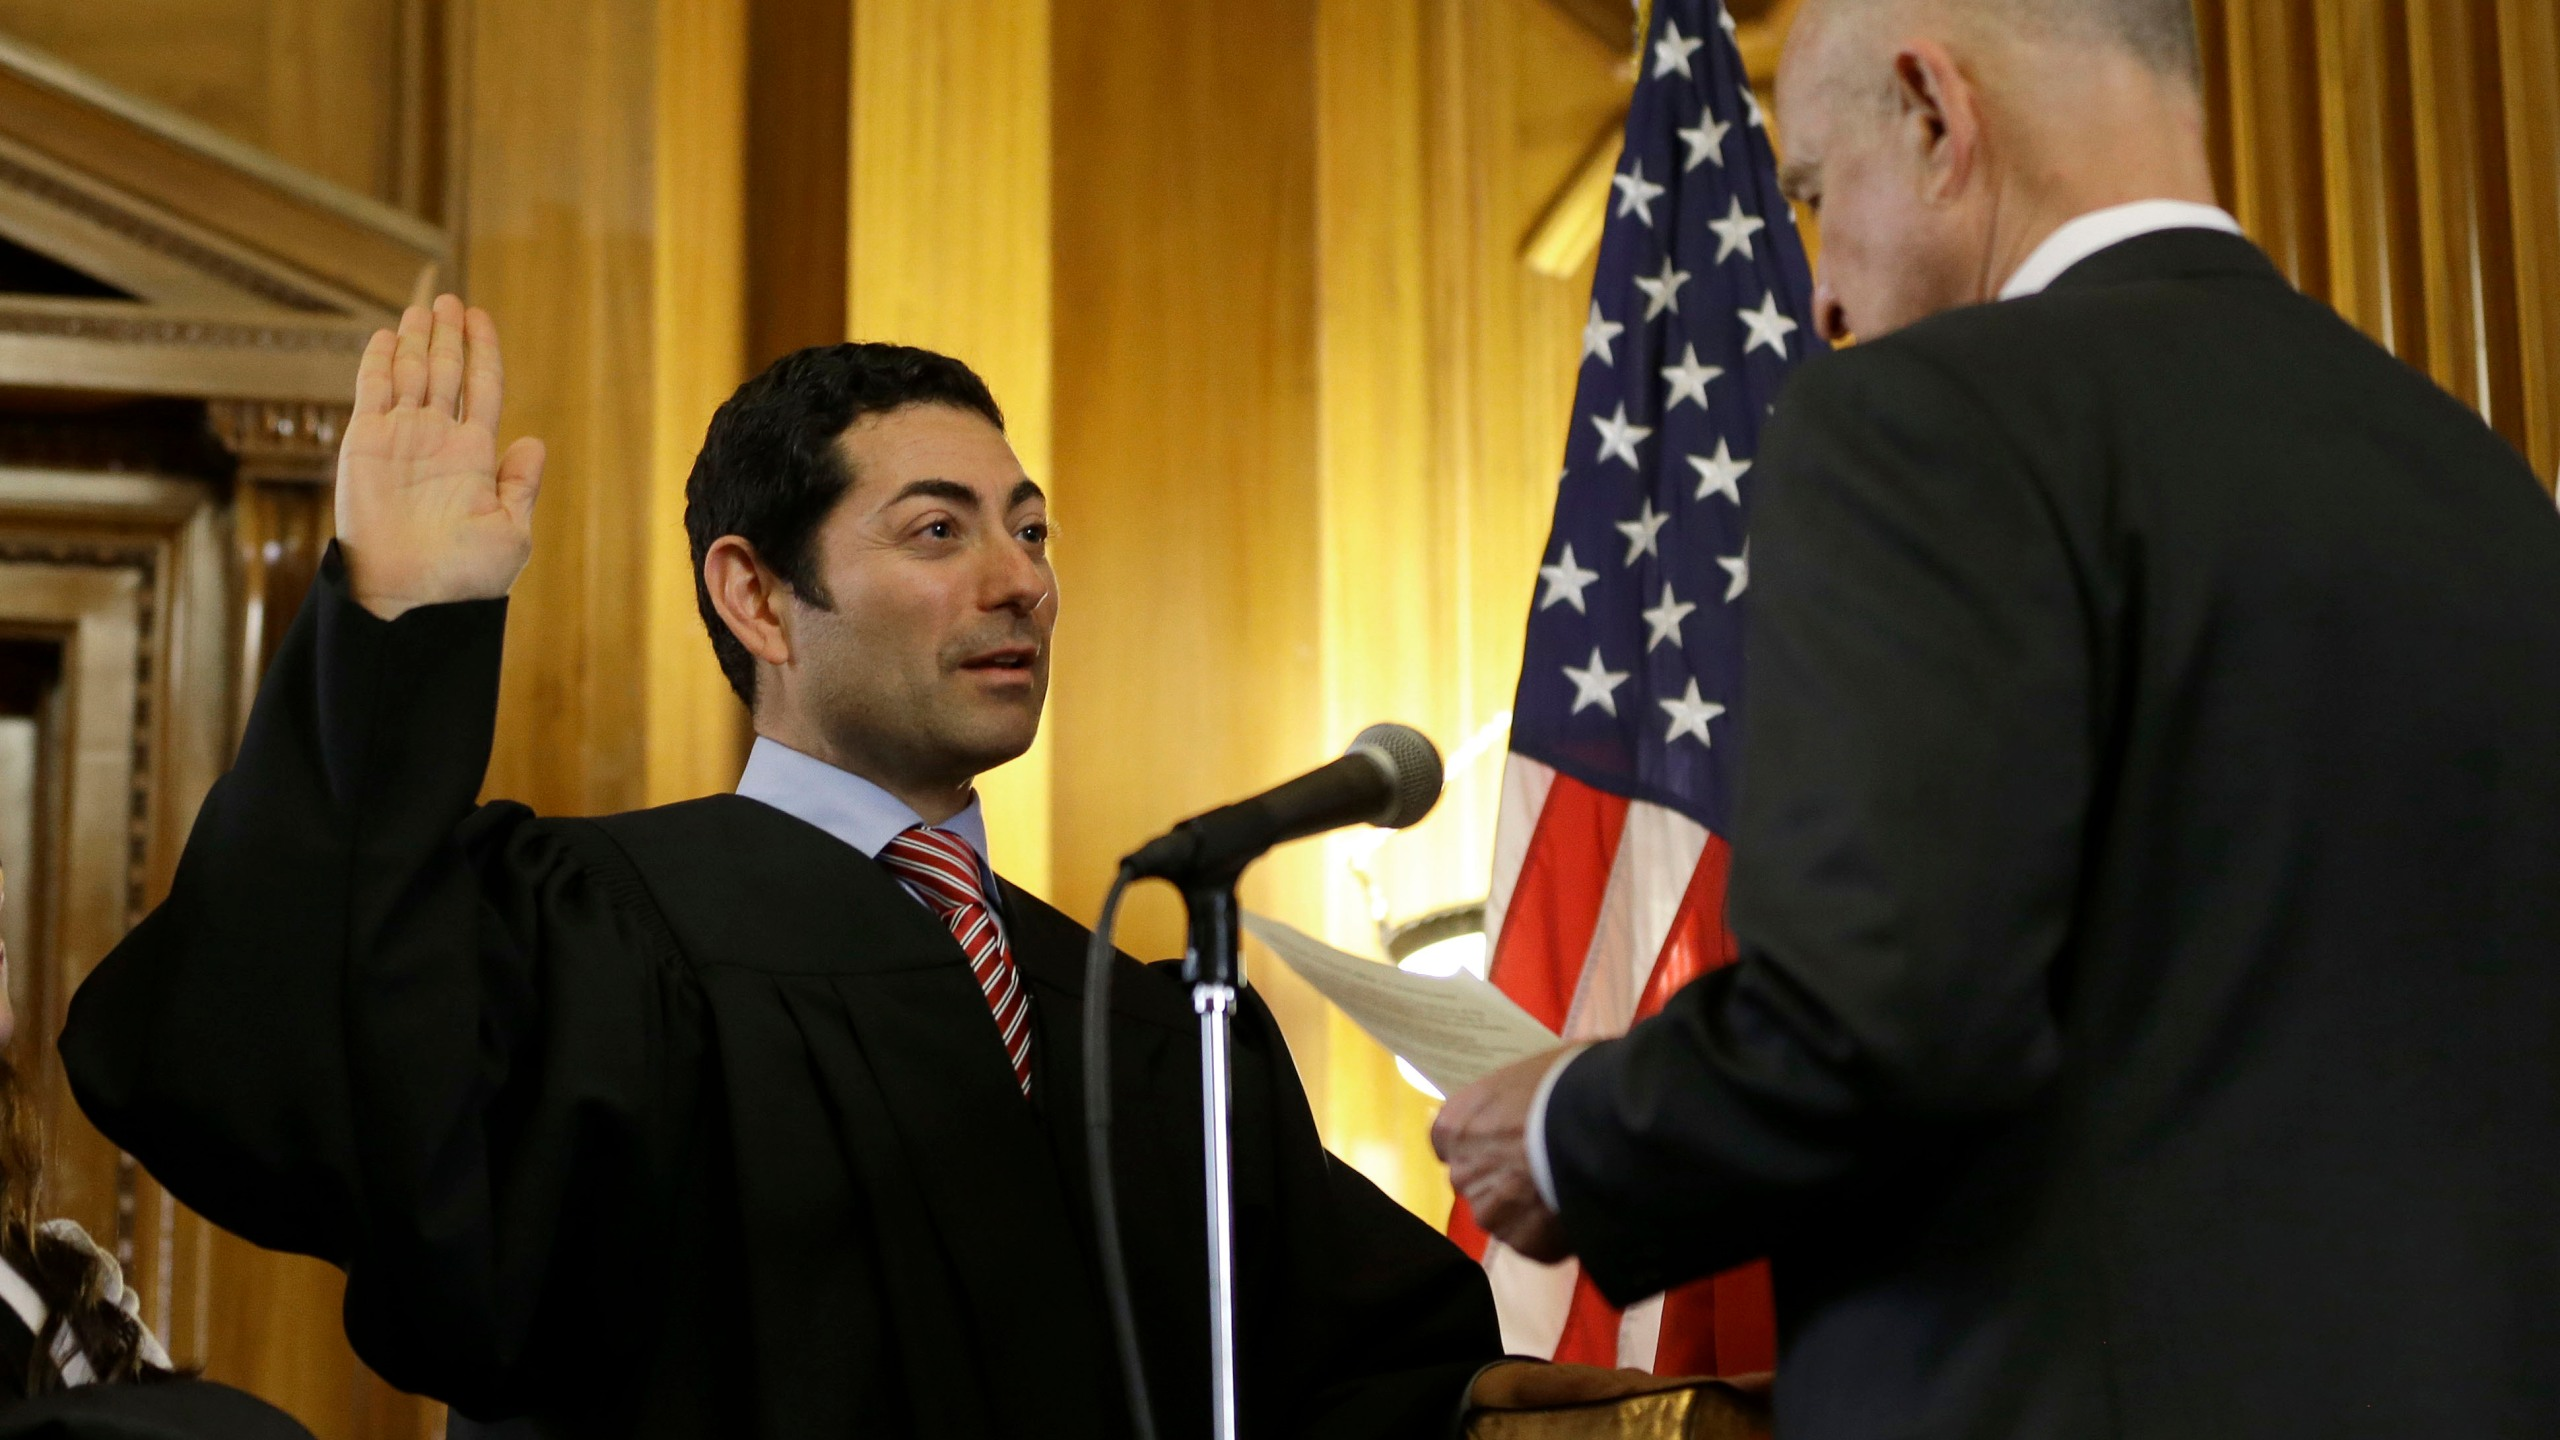 In this Jan. 5, 2015 file photo Mariano-Florentino Cuellar, left, is sworn in as an associate justice to the California Supreme Court by Gov. Jerry Brown during an inauguration ceremony in Sacramento. (Rich Pedroncelli/Associated Press)